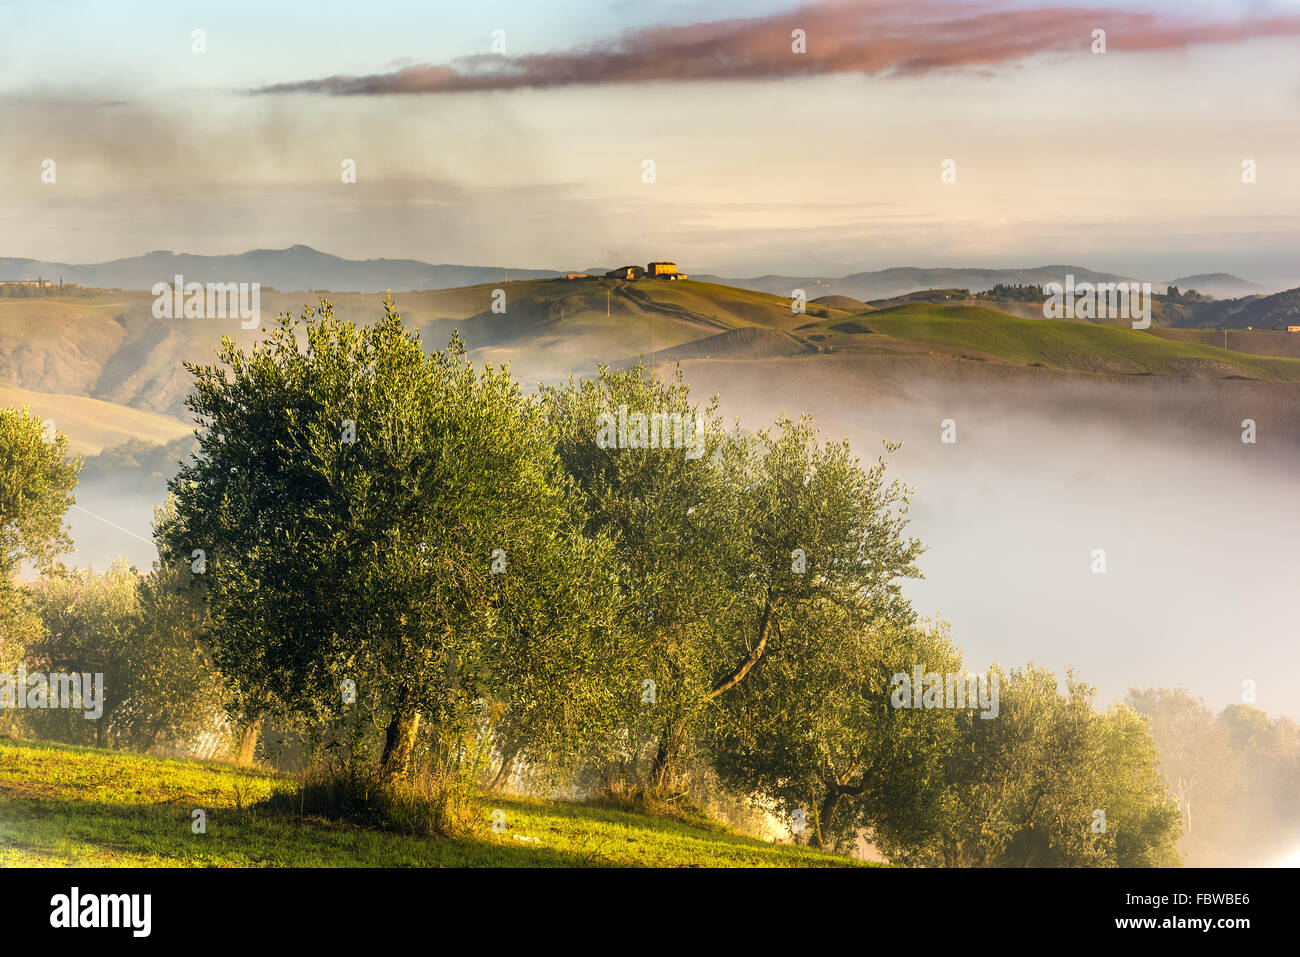 Olive trees in the hills of Tuscany. Near Asciano, Crete Senesi zone, Italy - Stock Image